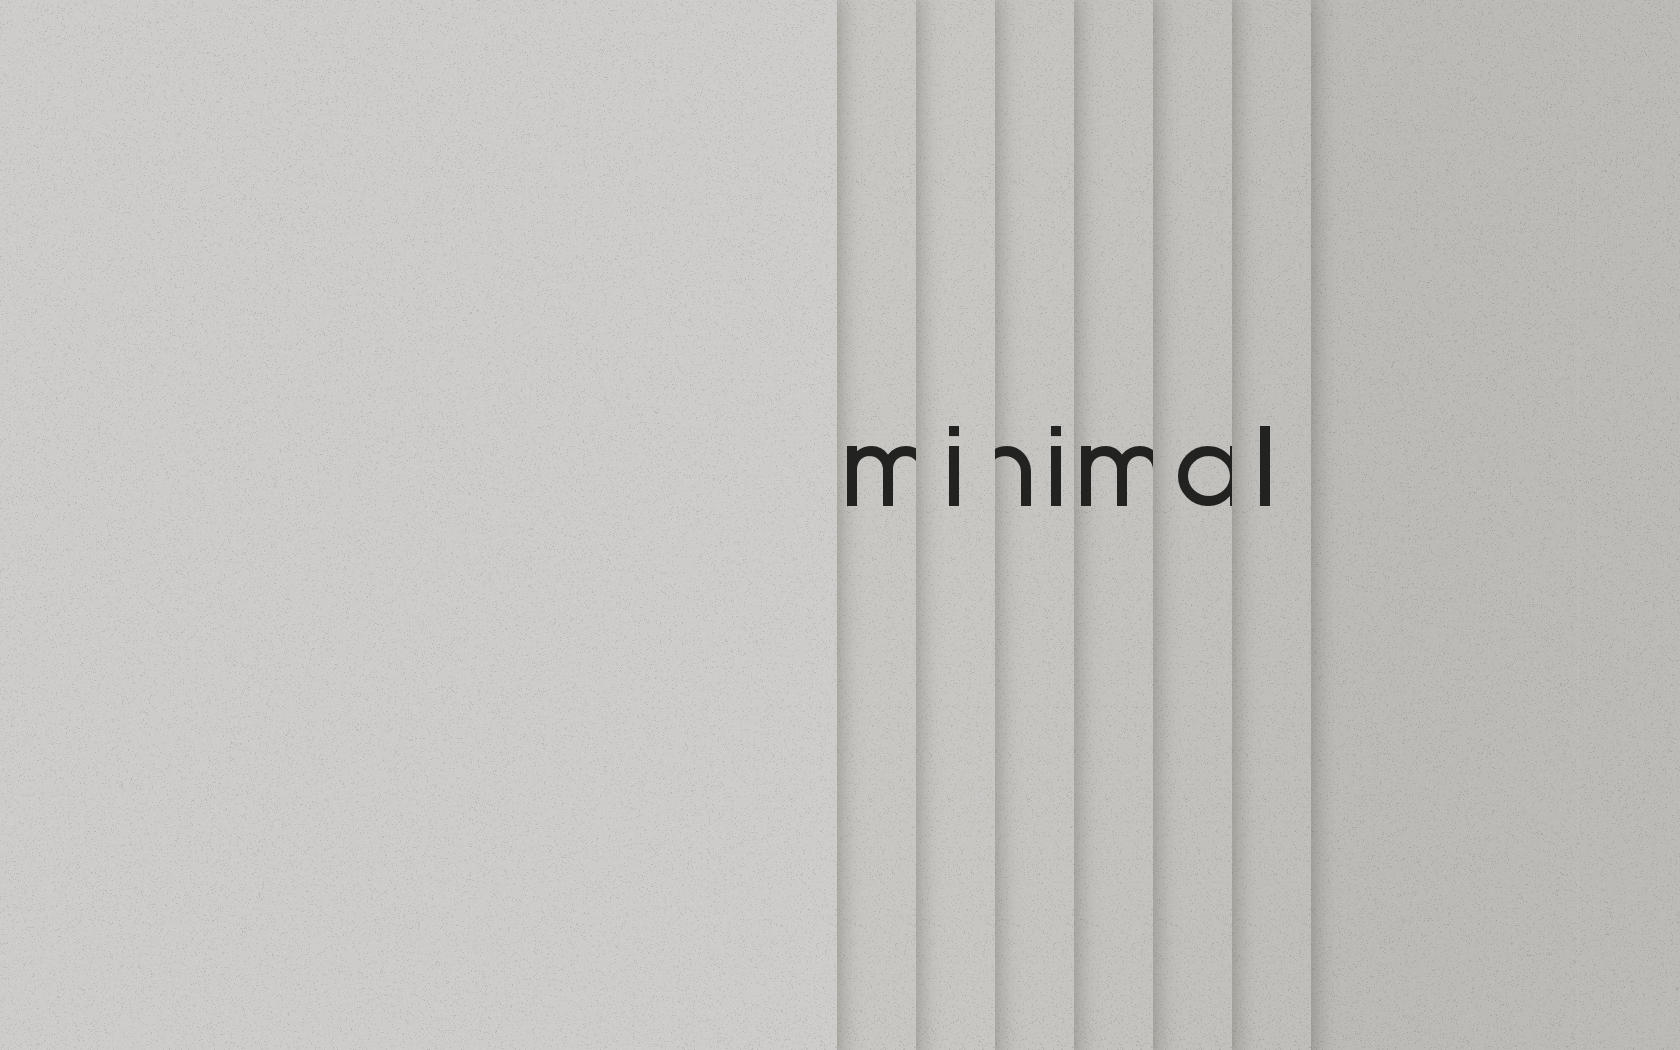 Minimal wallpaper by coroners on deviantart for Minimal art hd